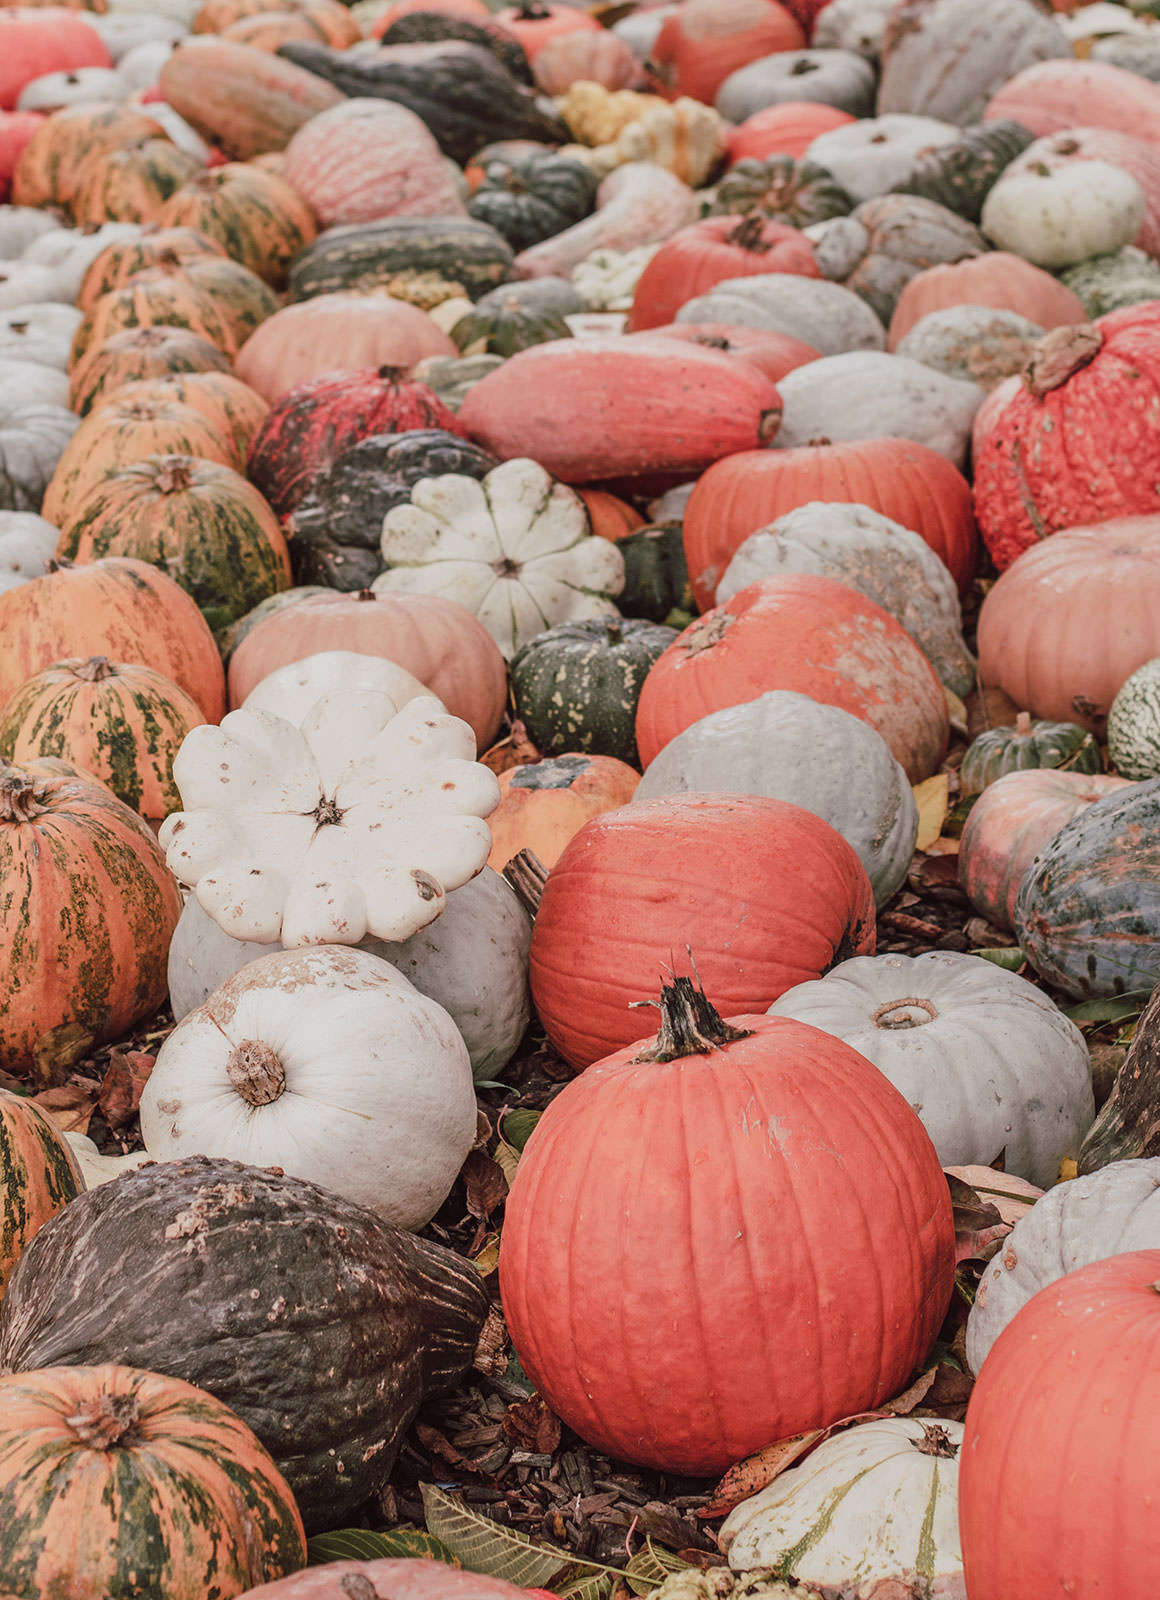 A day at Jucker Farm Pumpkin Festival in Switzerland